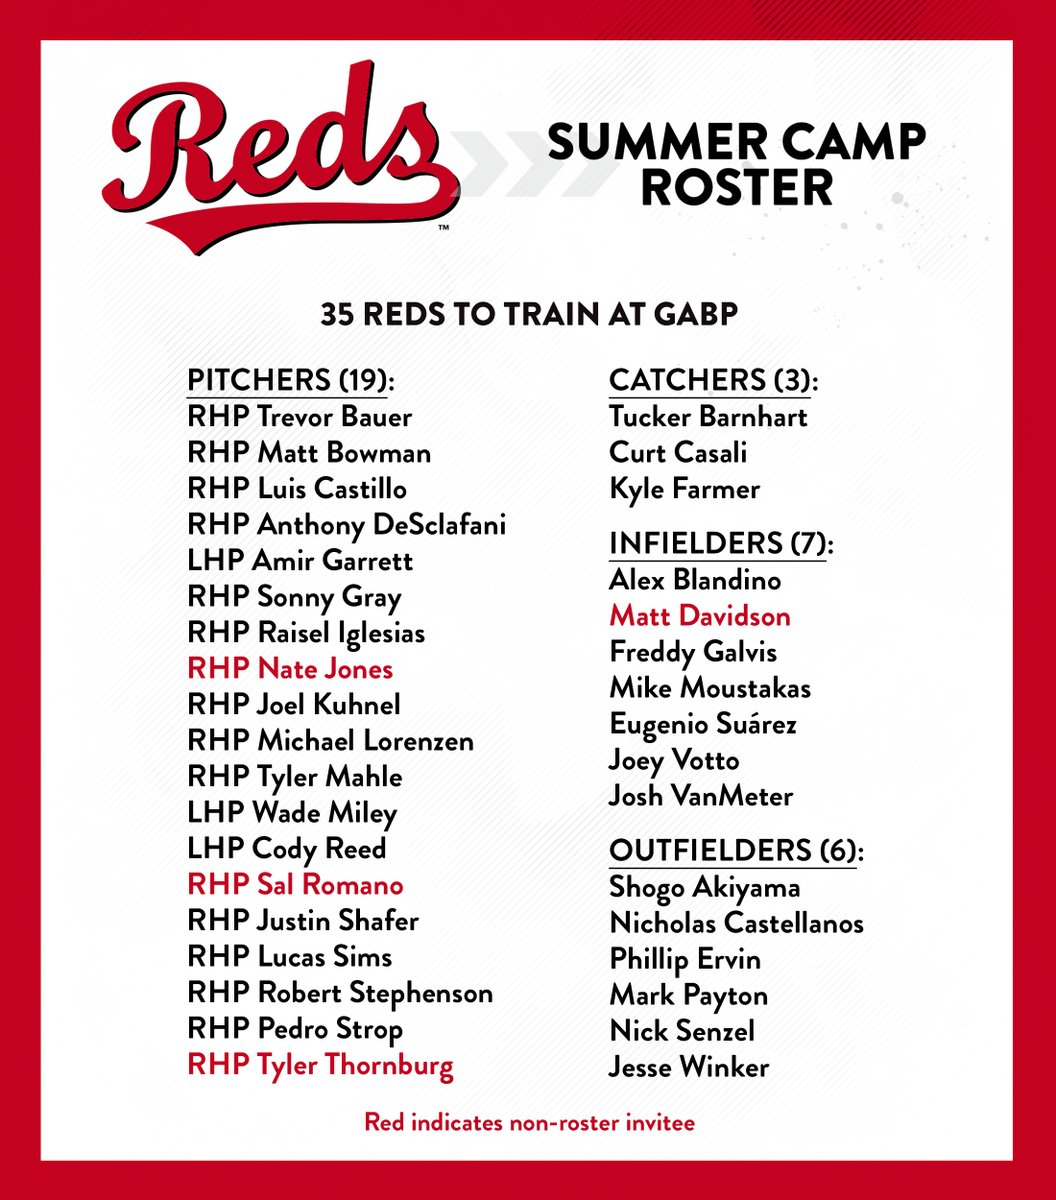 The #Reds today announced their Summer Camp roster. https://t.co/yIIbHmG4xl